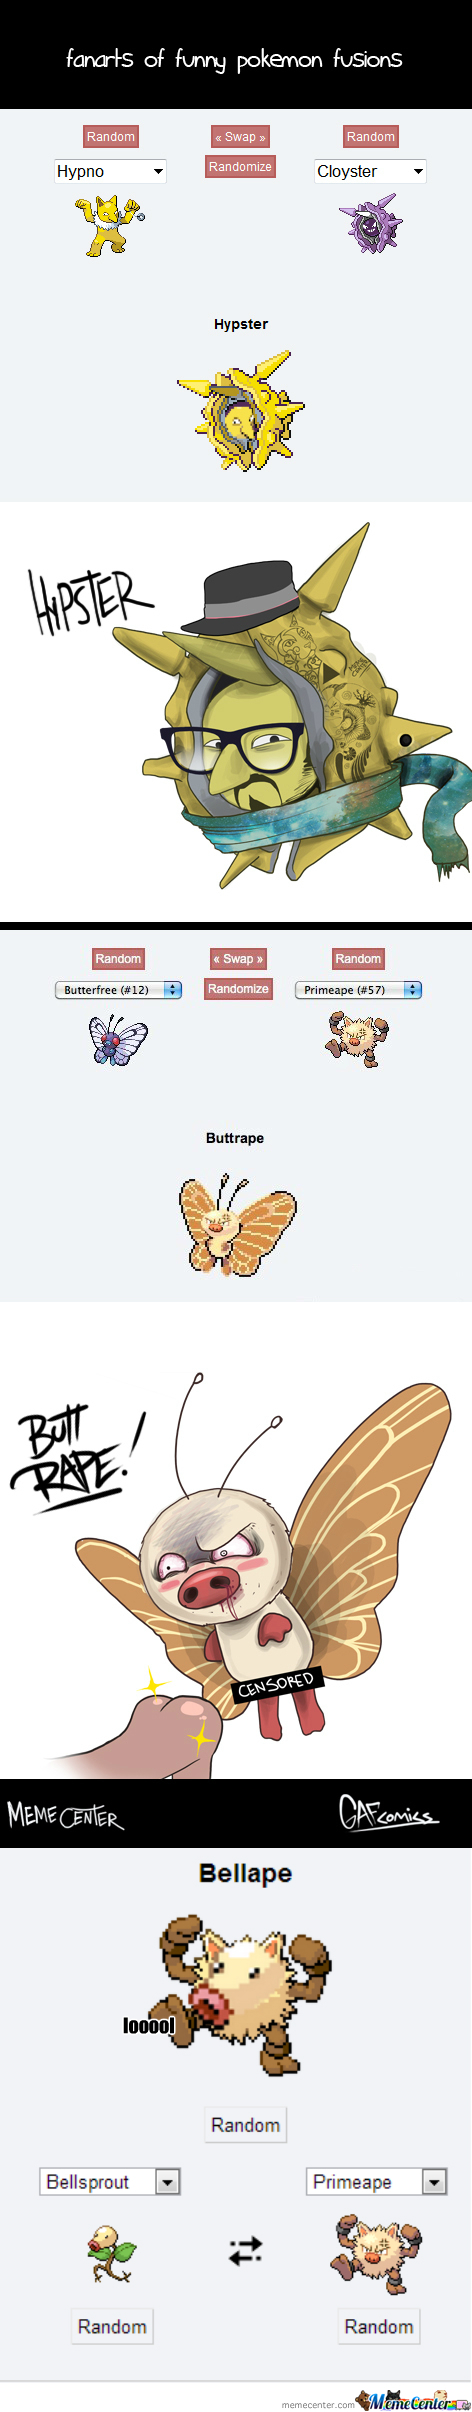 [RMX] Pokemon Fusion!